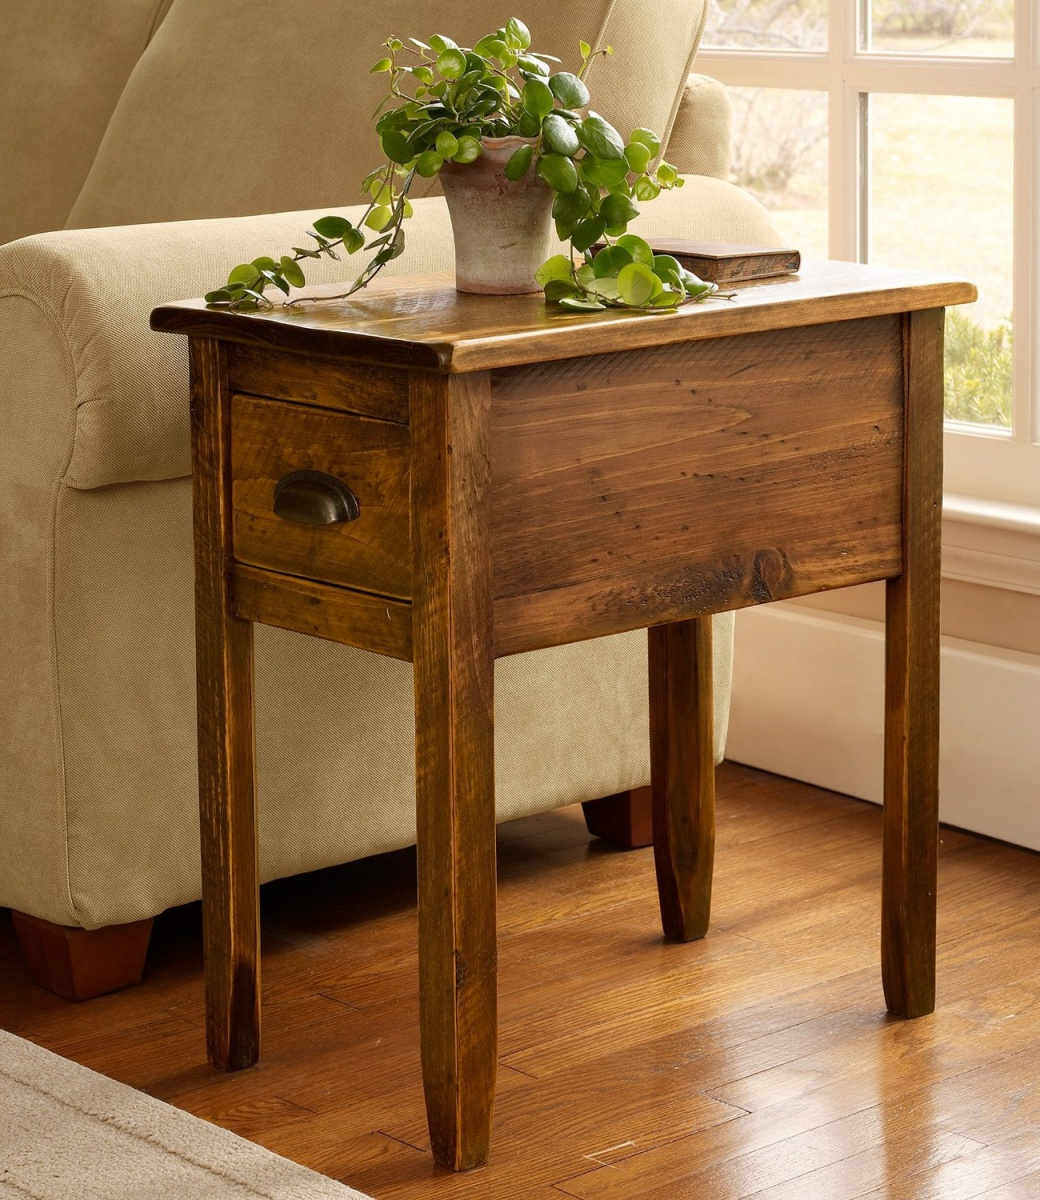 rustic wooden side tables with storage for living room end tables